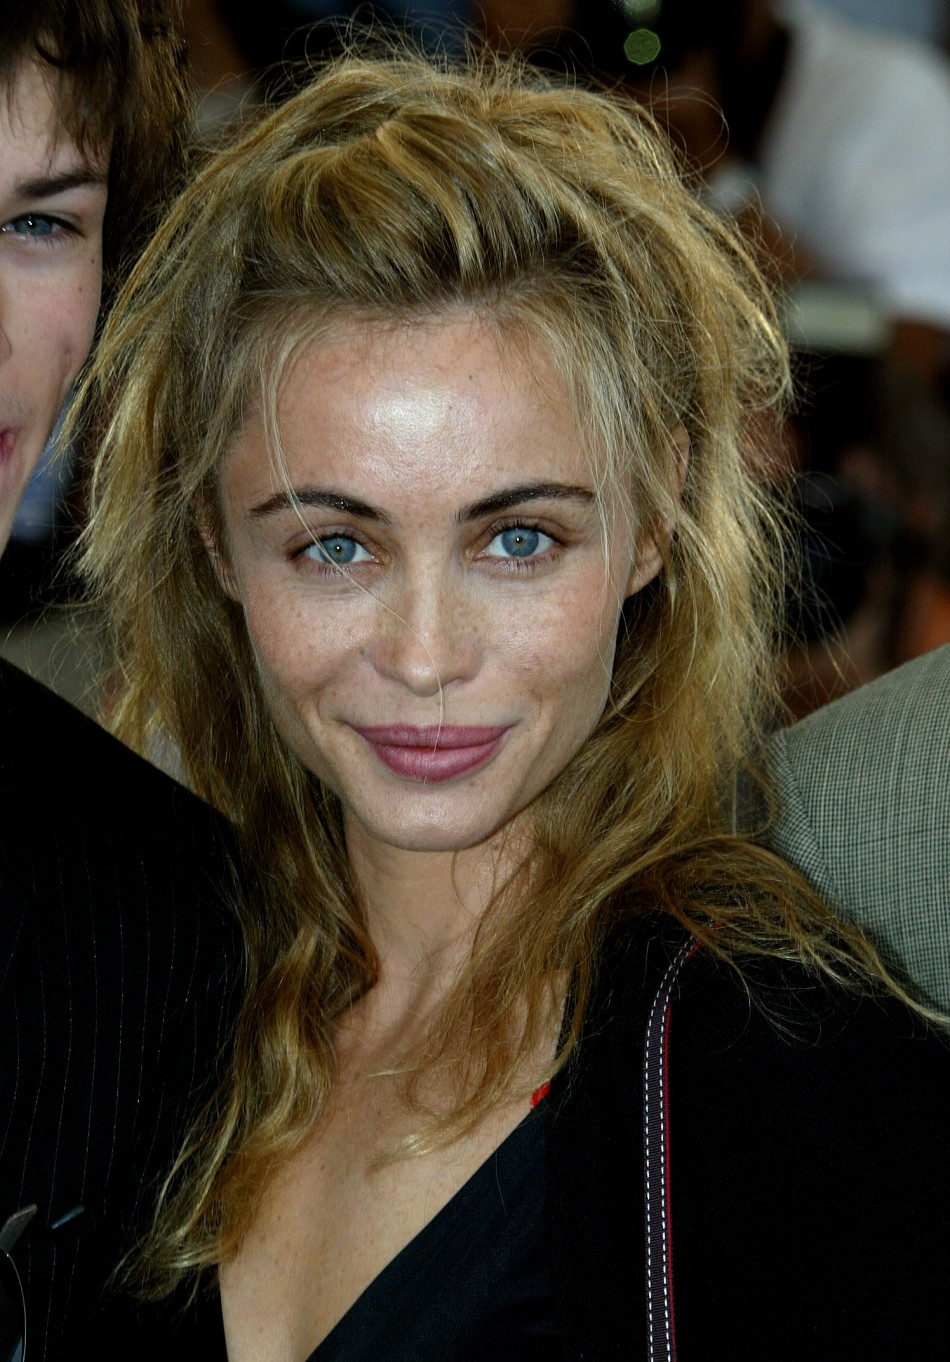 FRENCH ACTRESS BEART POSES FOR quotLES EGARESquot AT 56TH INTERNATIONAL FILM FESTIVAL IN CANNES in 2003